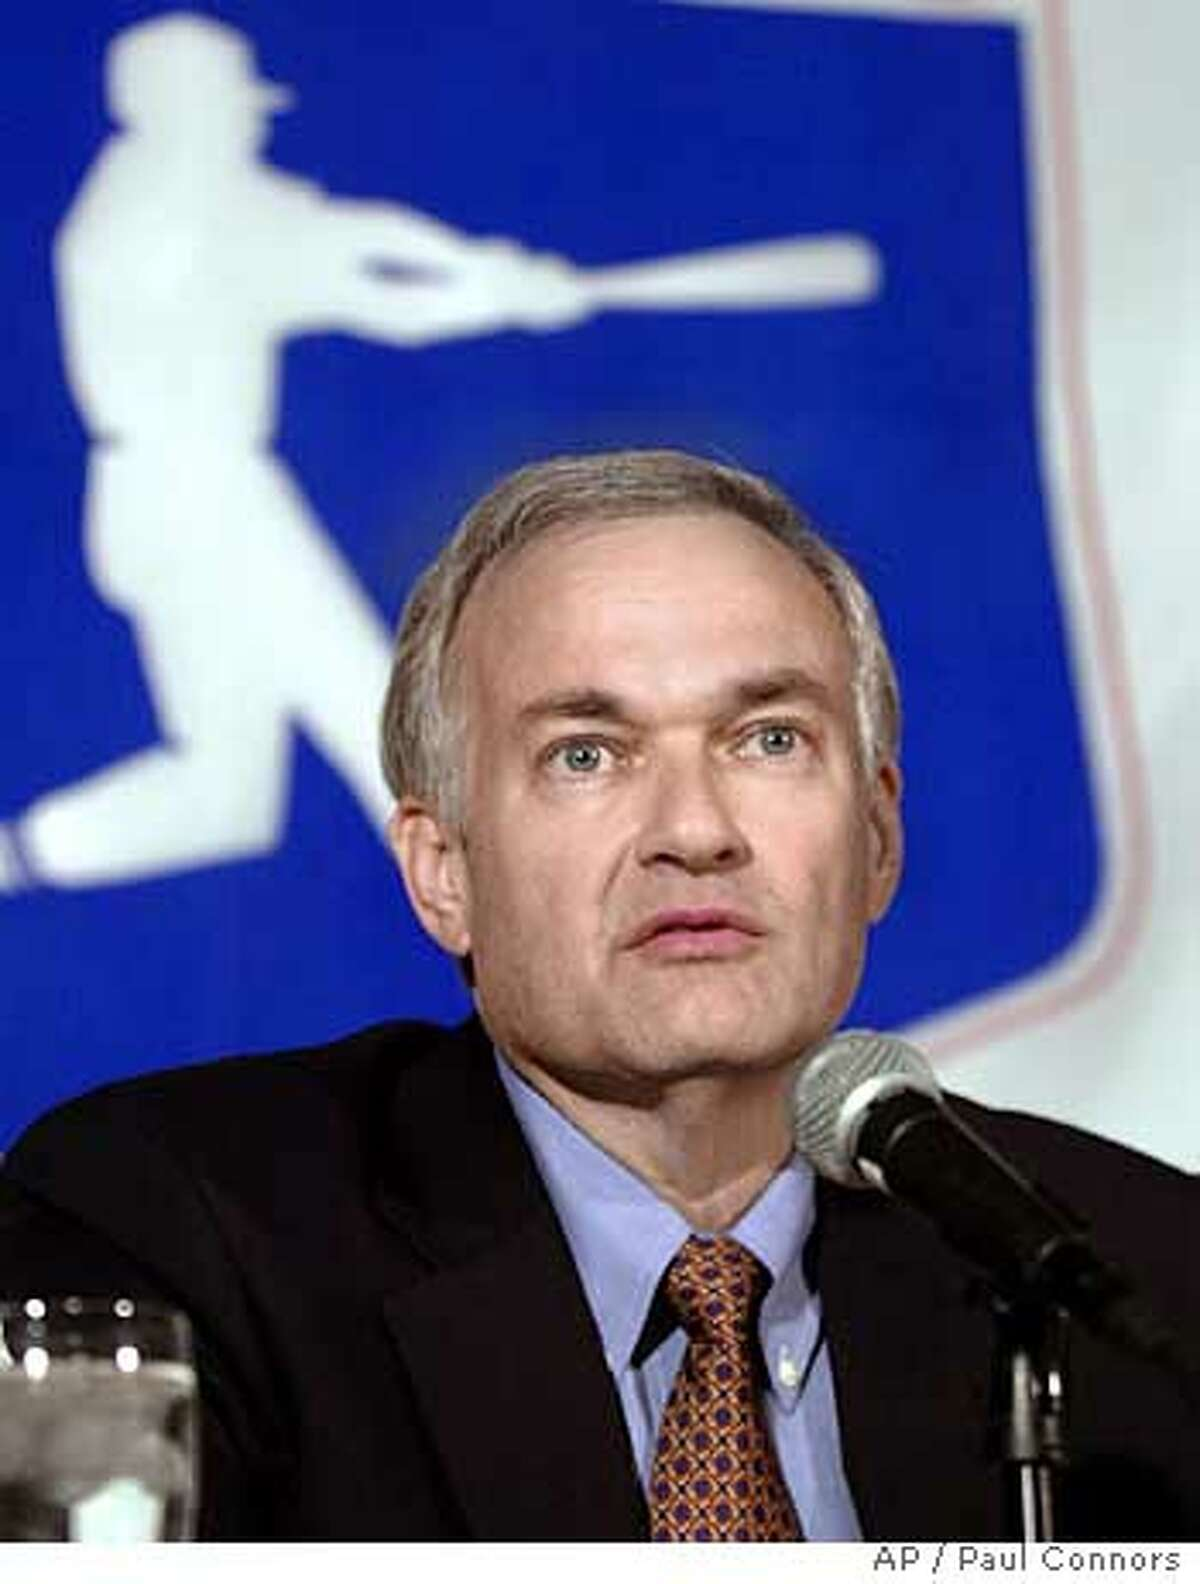 Major League Baseball Player's Association executive director Donald Fehr answers reporters' questions at a news conference during union meetings Tuesday, Dec. 7, 2004, at the Royal Palms Resort in Phoenix.(AP Photo/Paul Connors) Ran on: 12-08-2004 Players union chief Donald Fehr says he is willing to begin negotiations to toughen baseballs drug-testing policy. Ran on: 12-08-2004 Players union chief Donald Fehr says he is willing to begin negotiations to toughen baseballs drug-testing policy. Ran on: 01-14-2005 Ran on: 01-14-2005 Ran on: 01-14-2005 Ran on: 02-19-2005 In friendlier times, such as spring training 1997, Jose Canseco and Mark McGwire (left) did their talking in person. Ran on: 03-23-2005 Ran on: 03-23-2005 Ran on: 03-23-2005 Ran on: 05-03-2005 Bud Selig Ran on: 05-03-2005 Bud Selig Ran on: 05-03-2005 Bud Selig